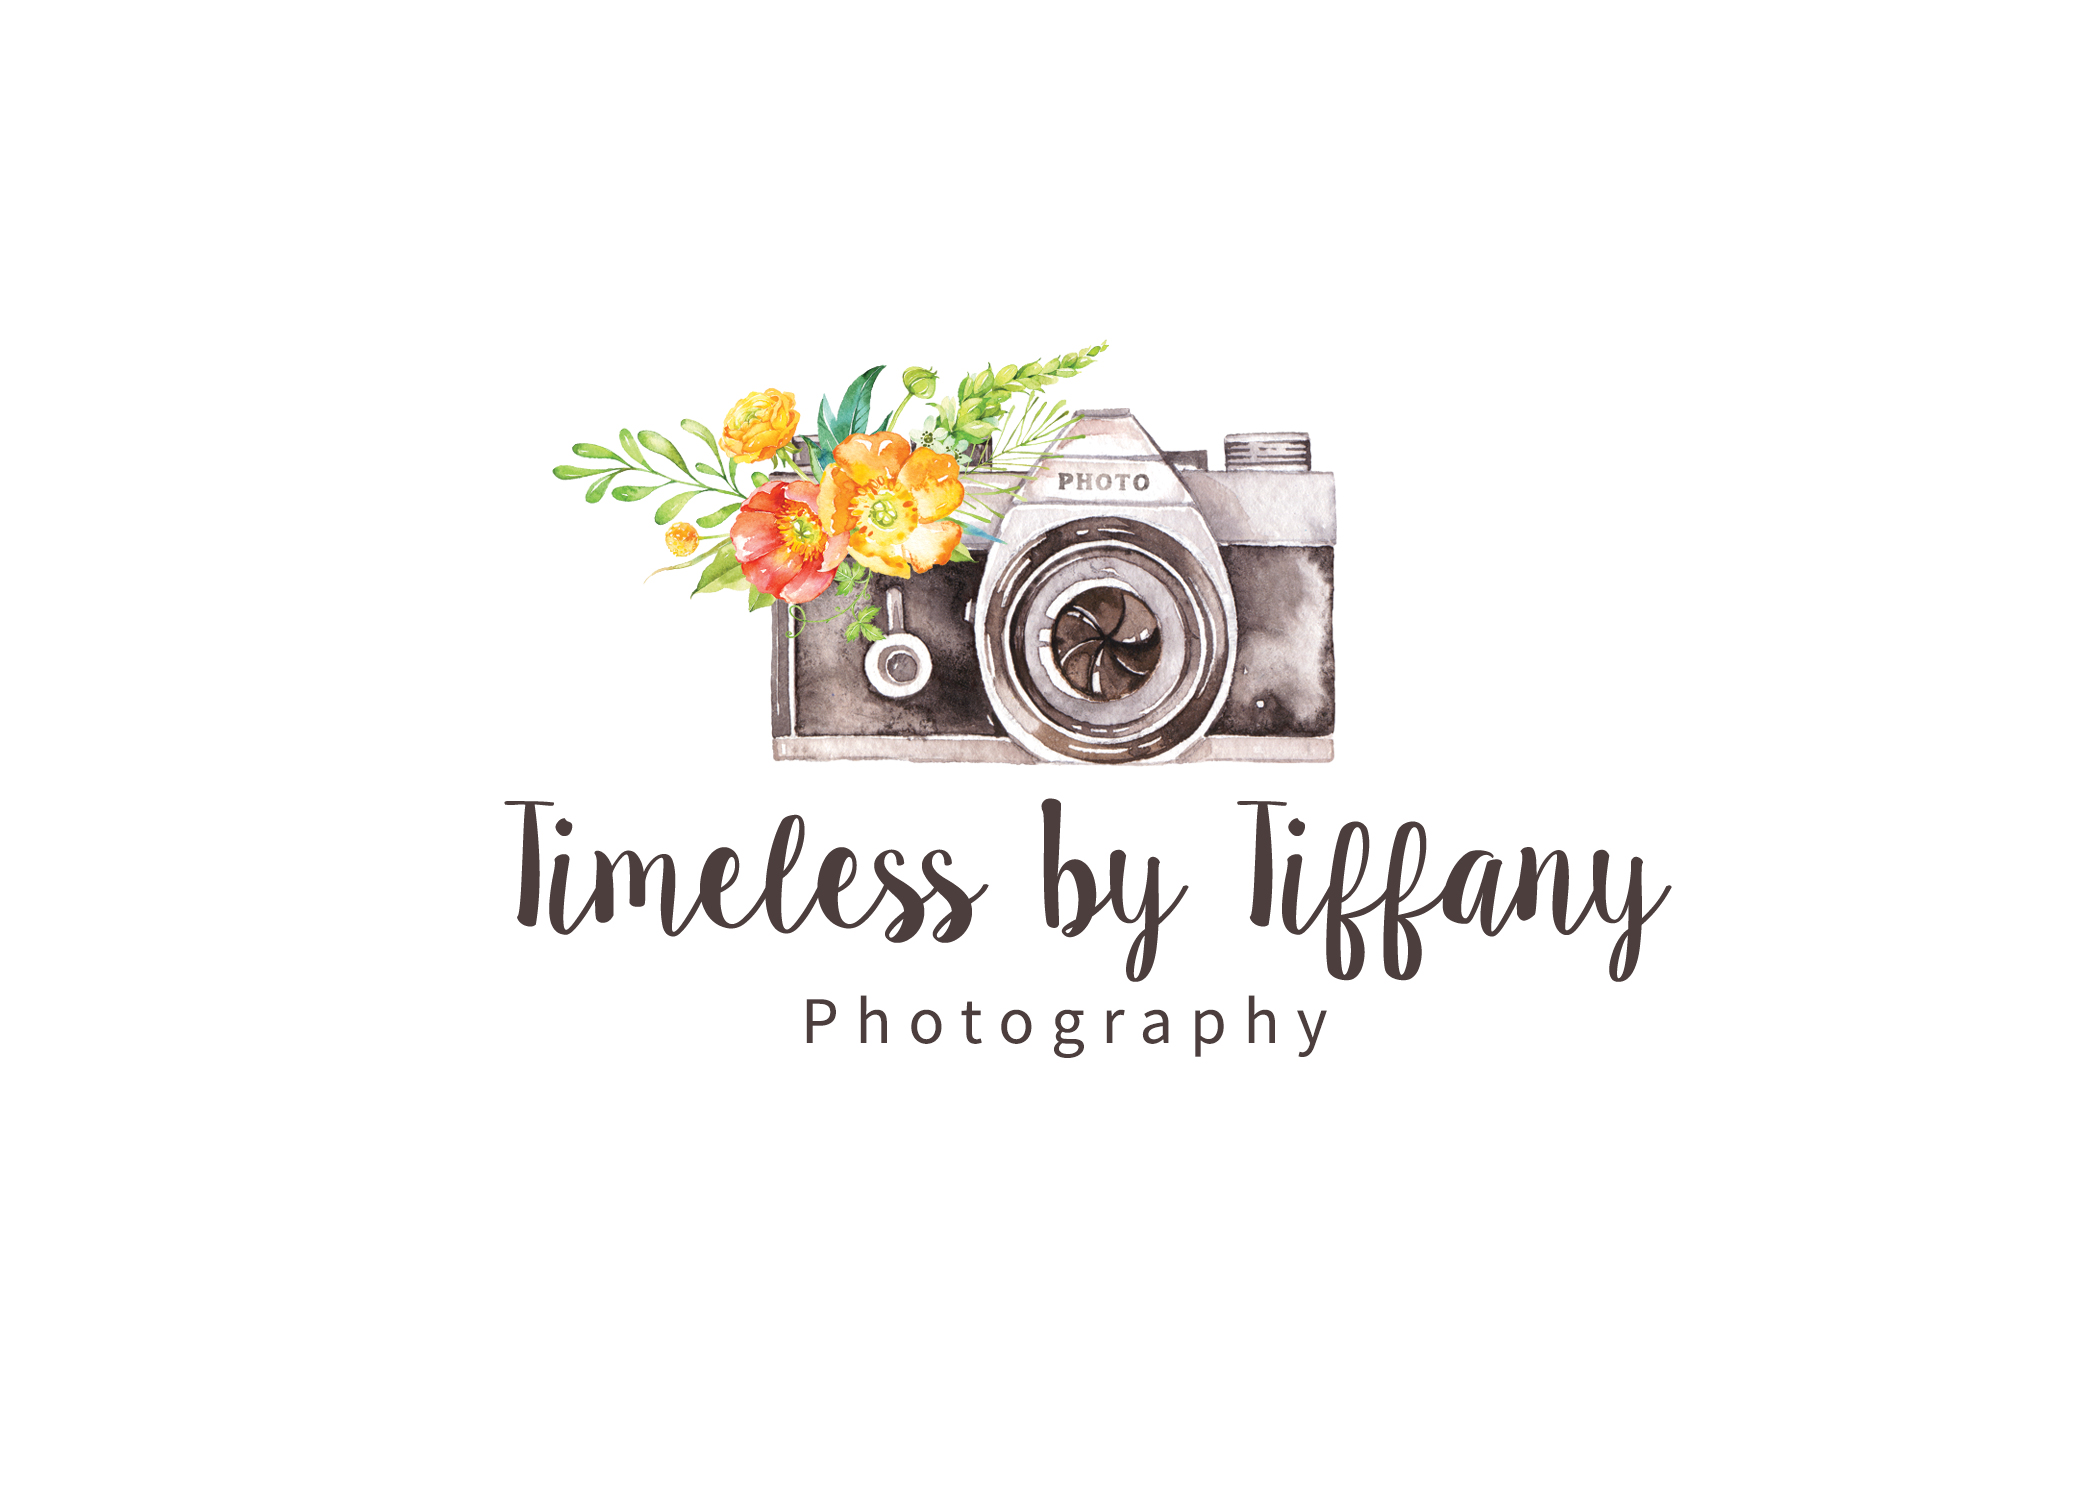 Timeless By Tiffany Photography